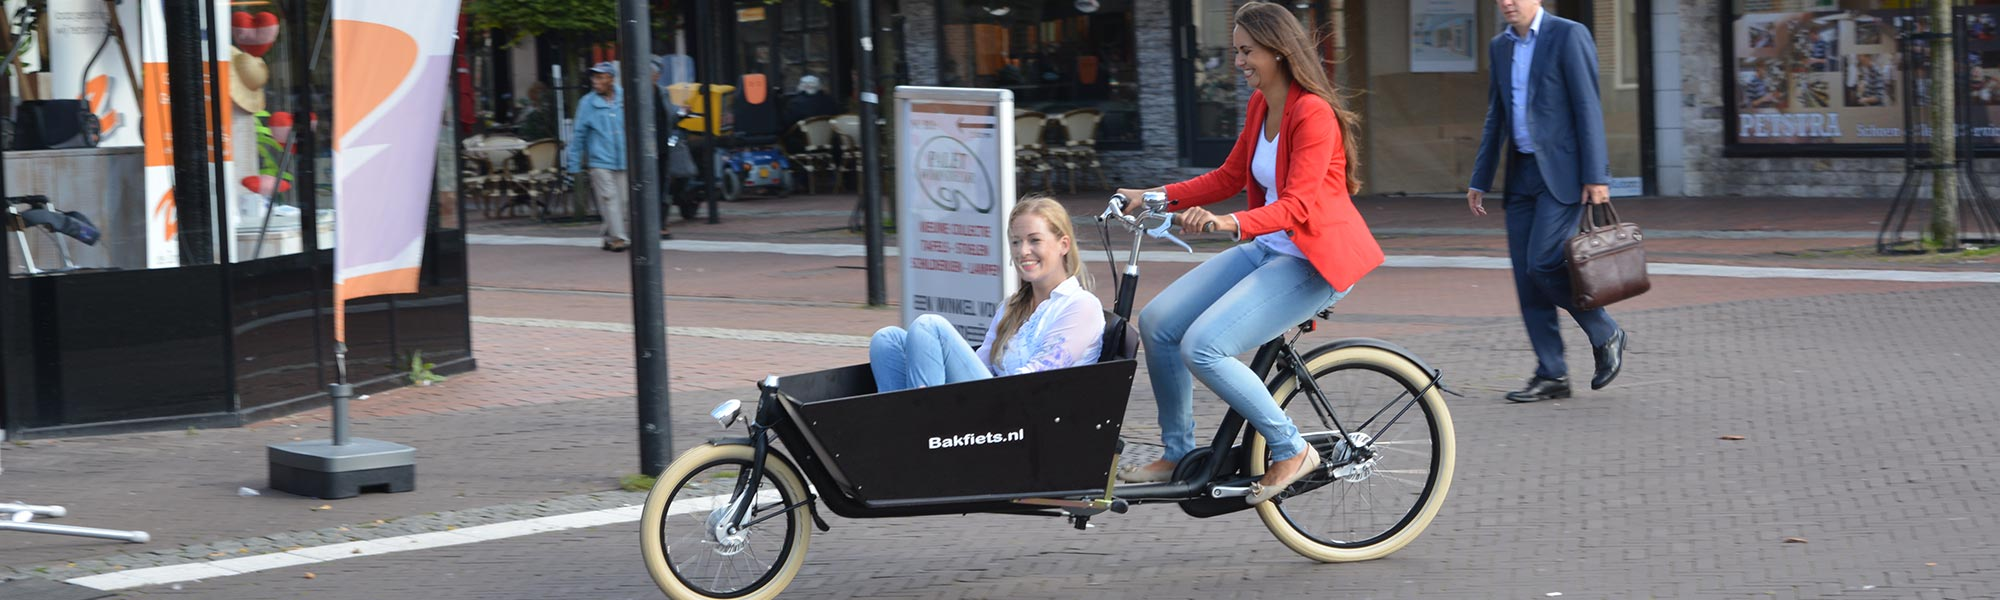 bakfiets.nl-cruiser-long-lifestyle